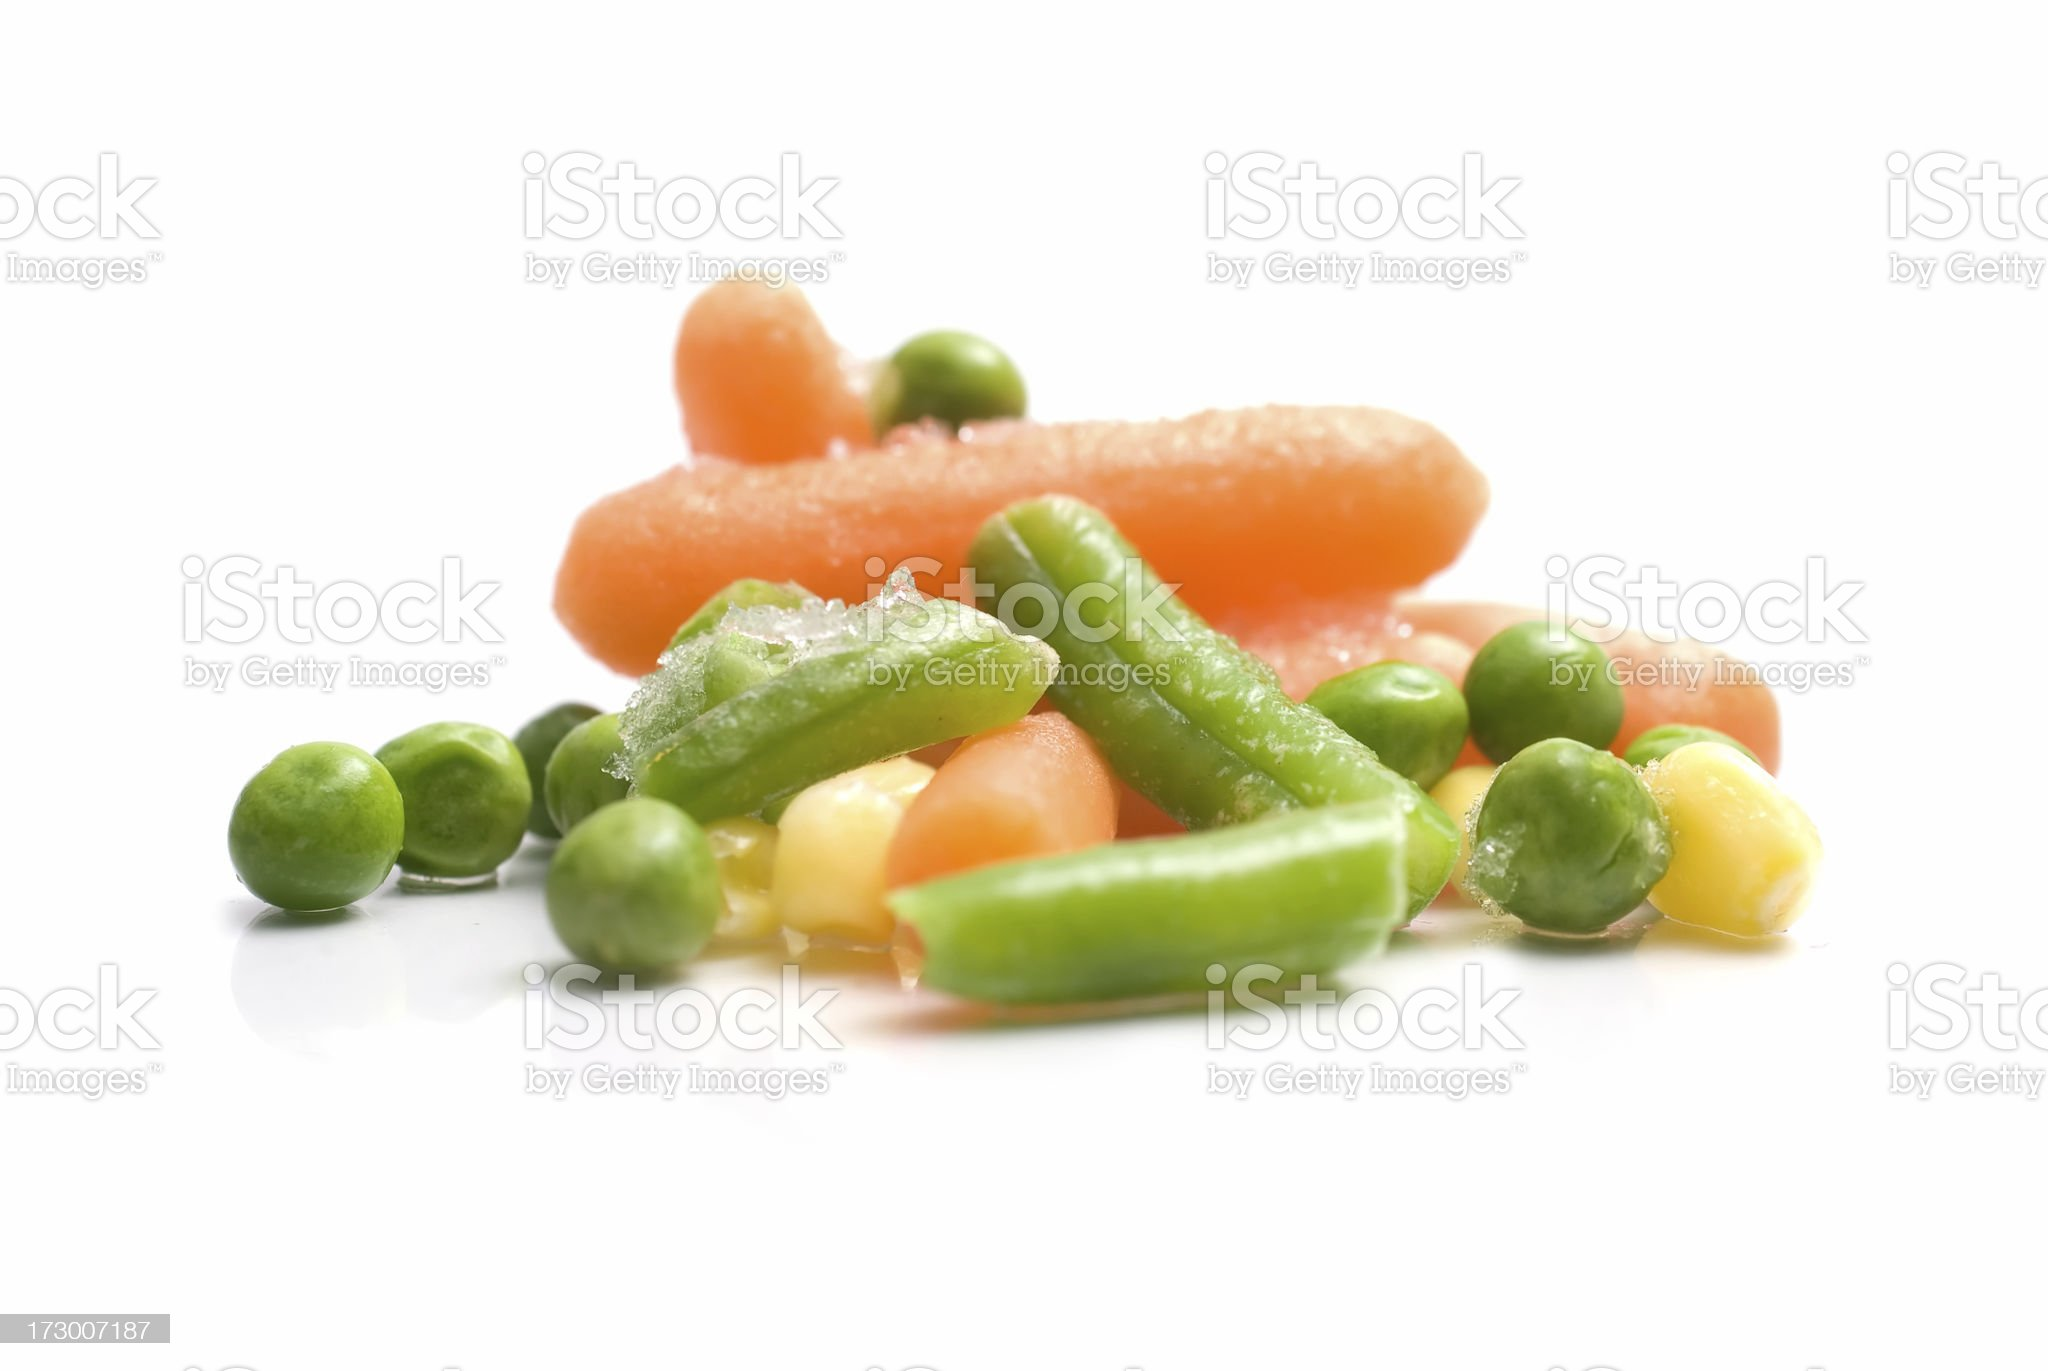 Frozen vegetables against a white backgorund royalty-free stock photo